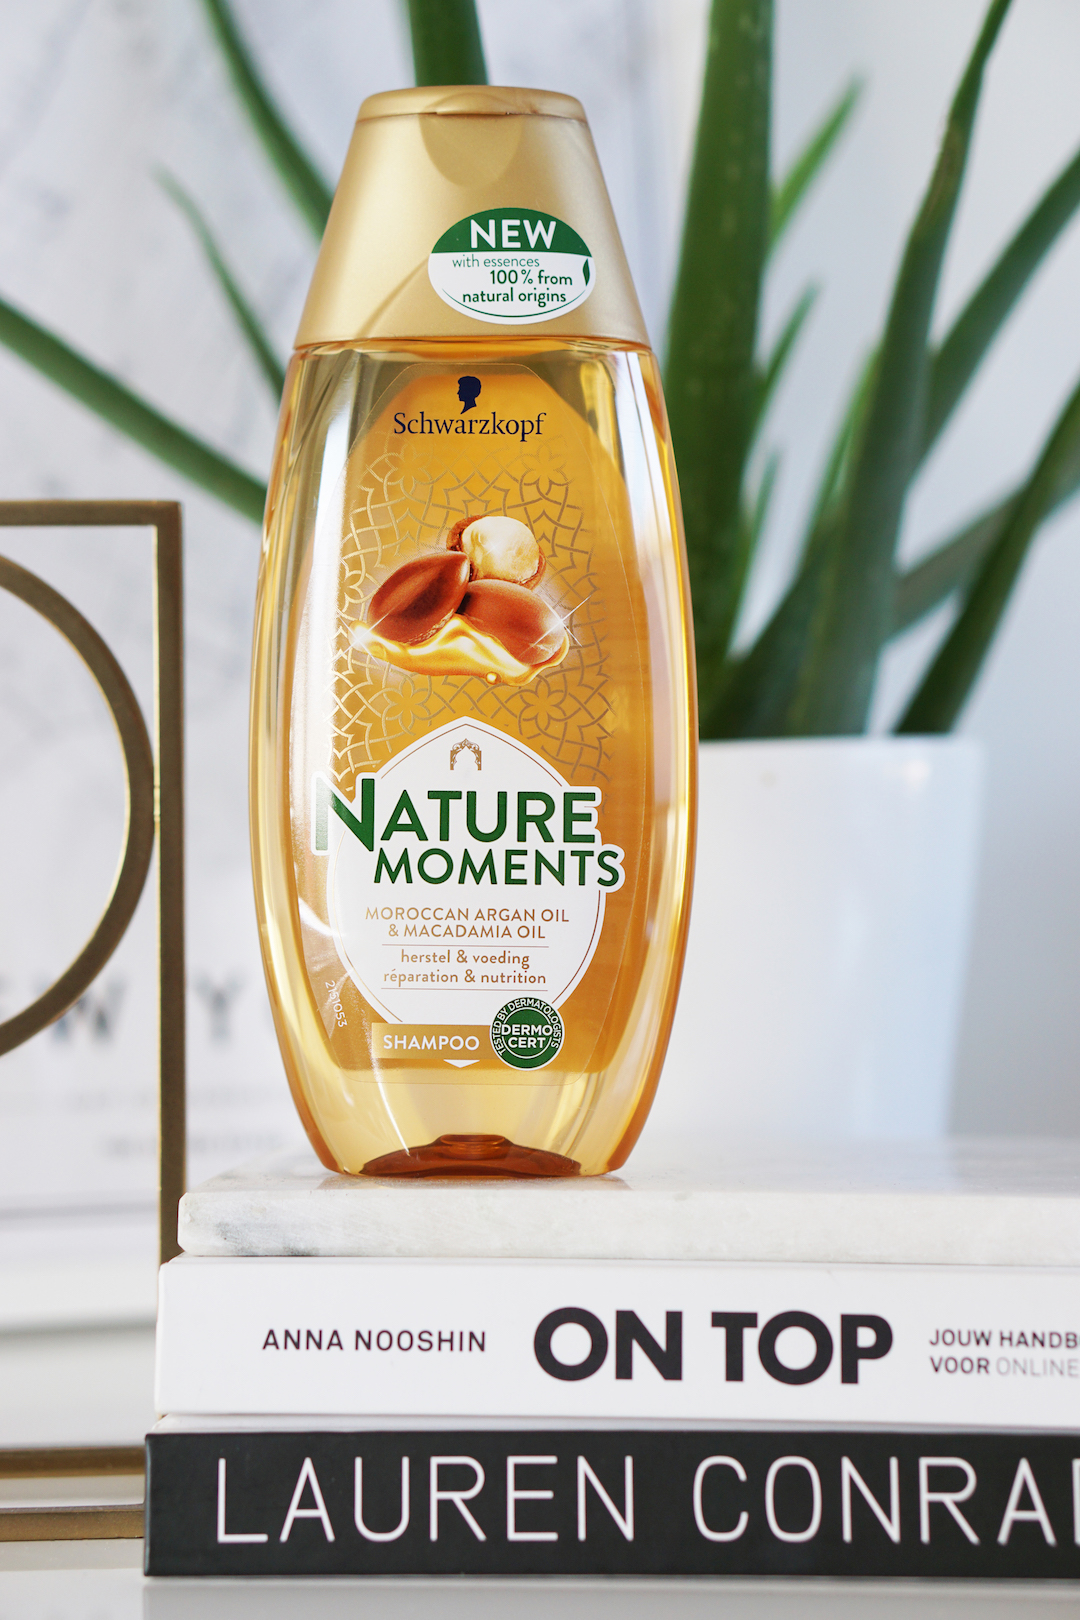 Schwarzkopf Nature Moments Moroccan Argan Oil & Macadamia Oil